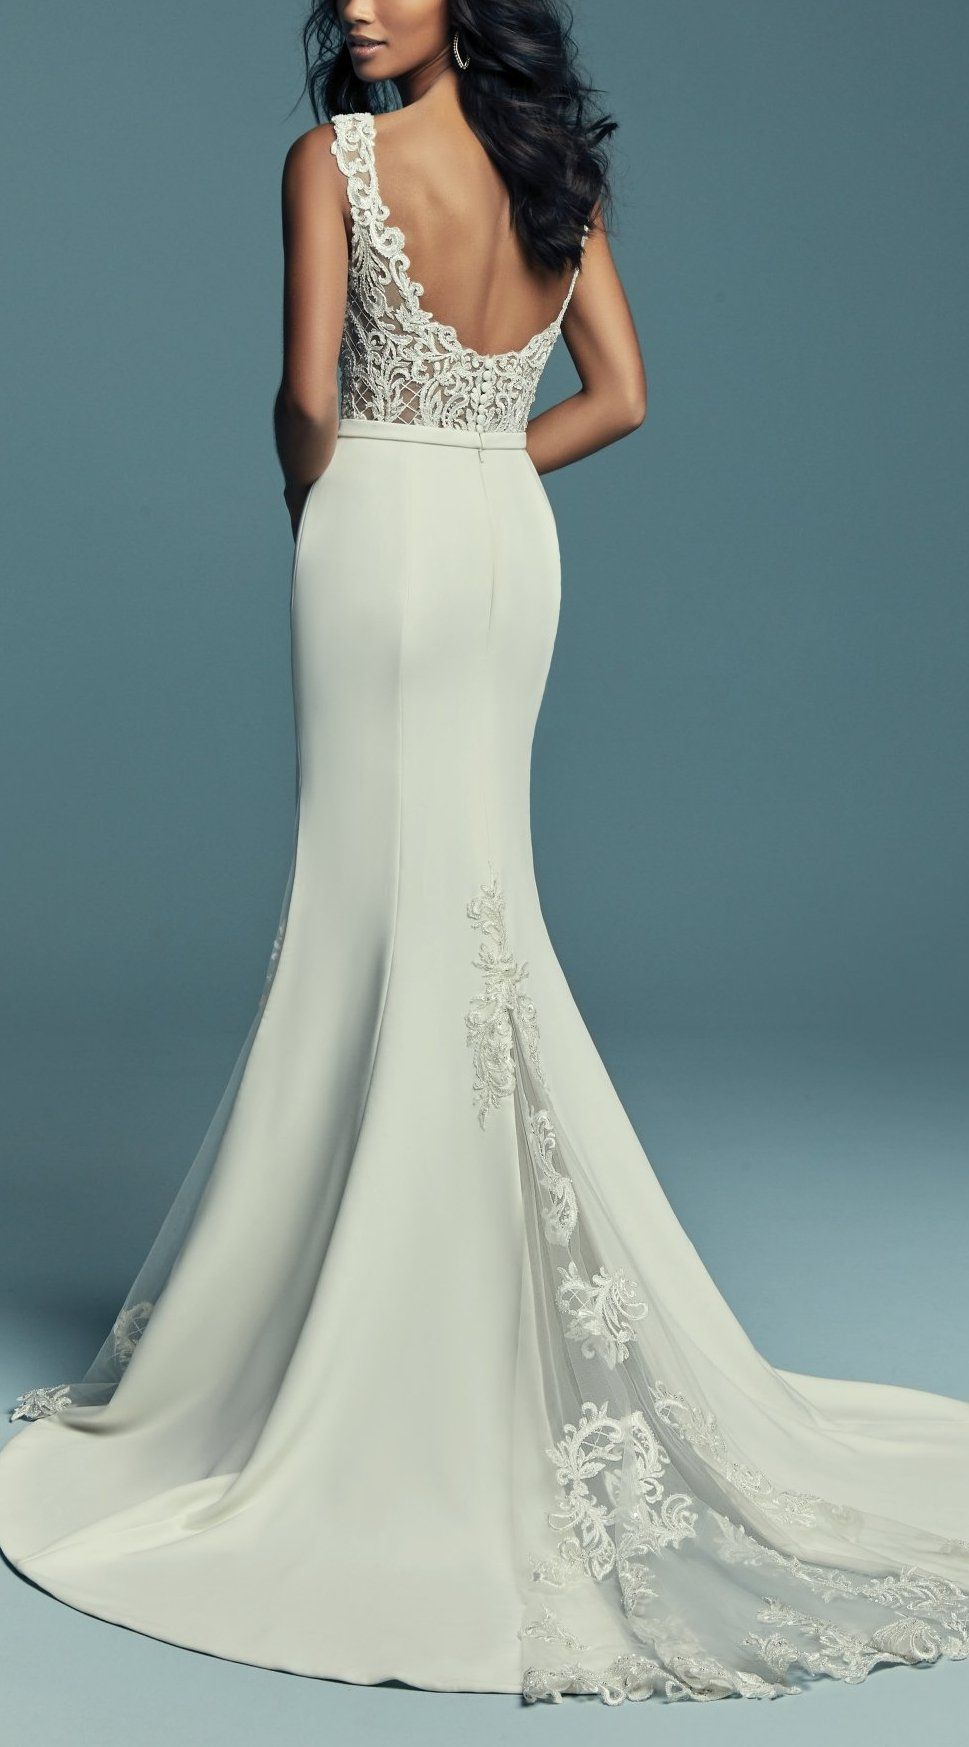 61787442dc8 JAYLEEN by Maggie Sottero Wedding Dresses in 2019